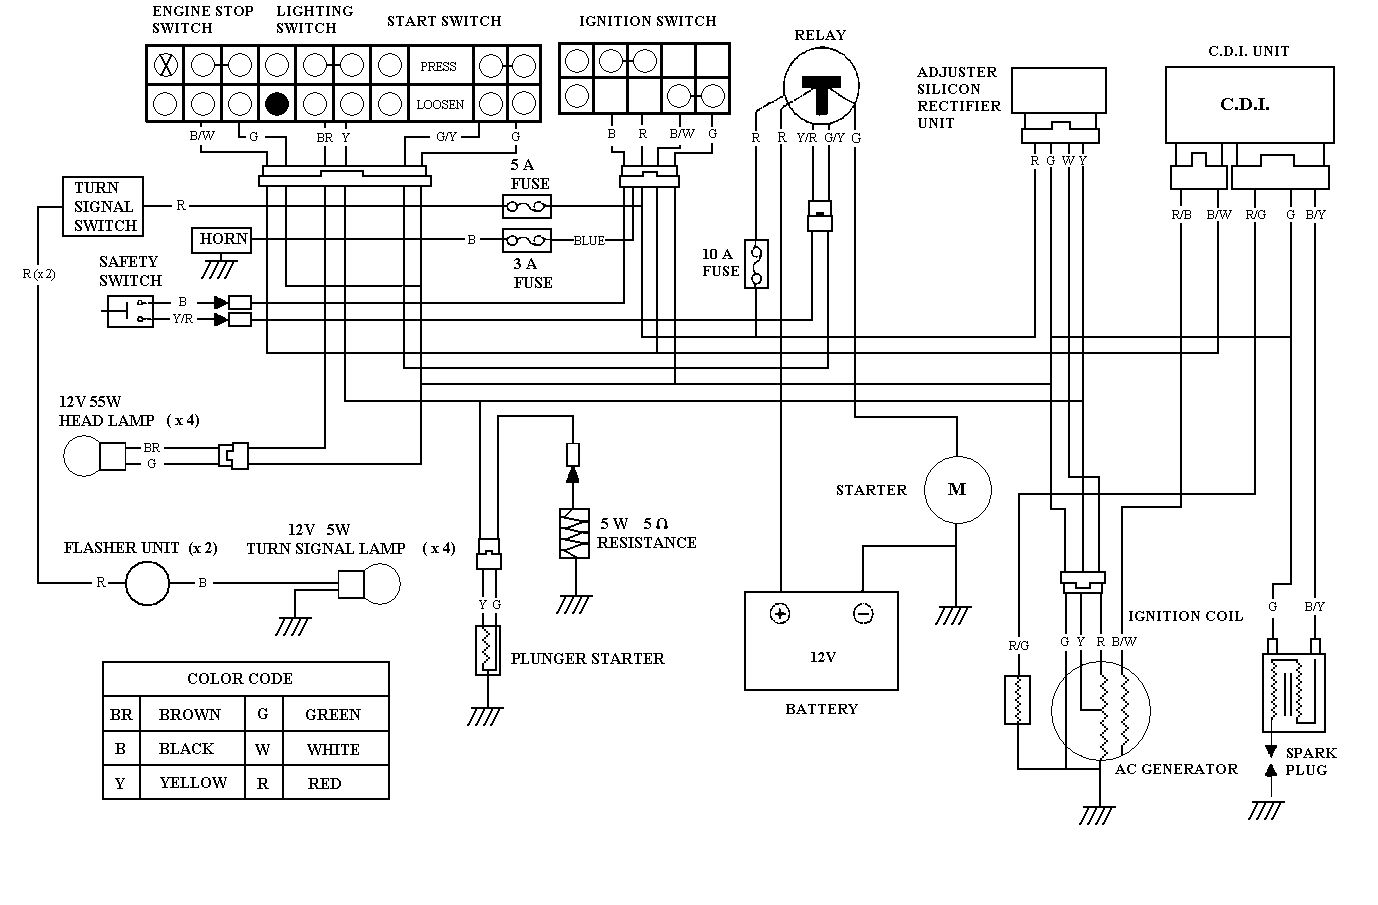 [DIAGRAM_3ER]  Carter Talon Go Kart Wiring Diagram - wiring diagrams schematics | Intertherm Diagram Electric Wiring Furnace A793523 |  | wiring diagrams schematics